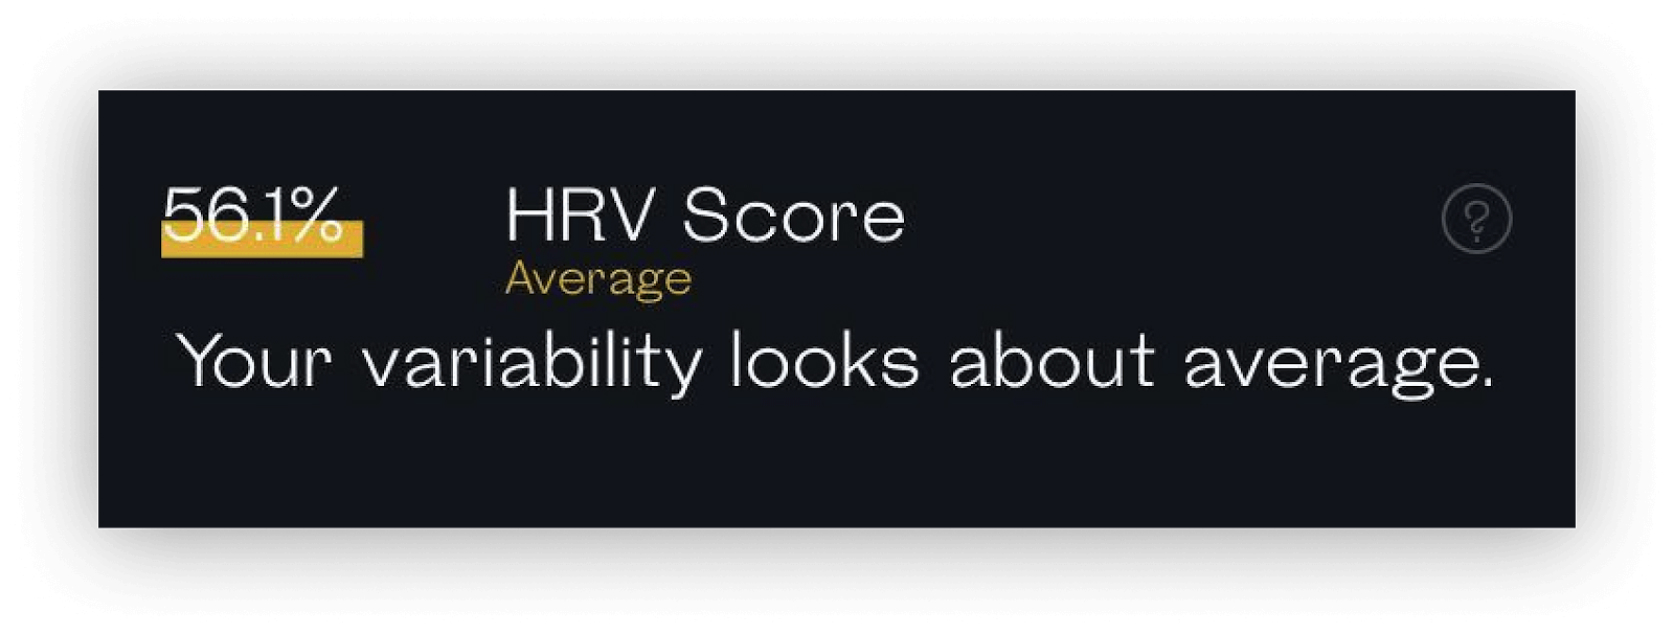 snapshot HRV Score readout showing average result